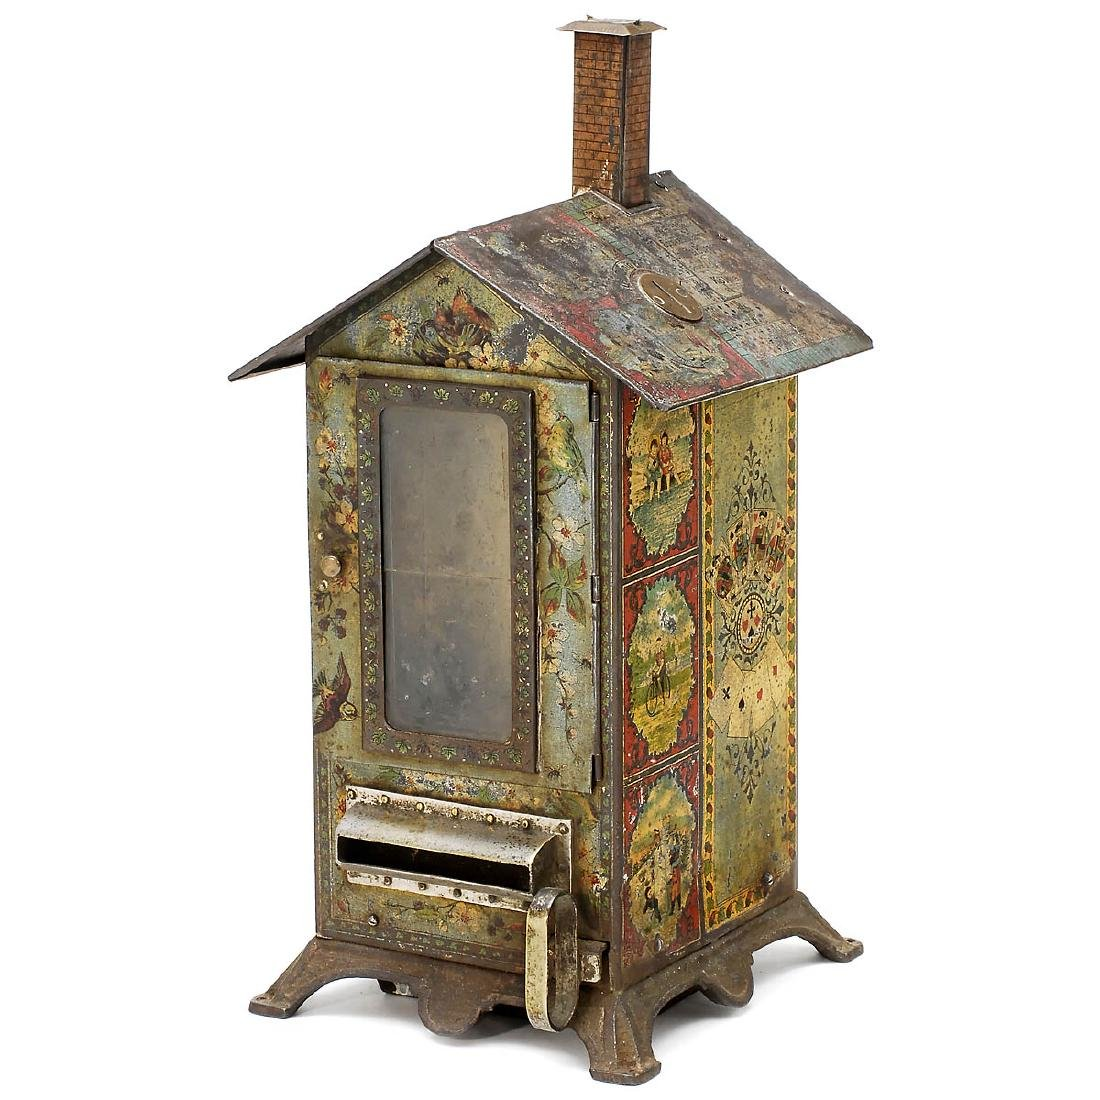 Playing Card Vending Machine and Cards Press, c. 1900